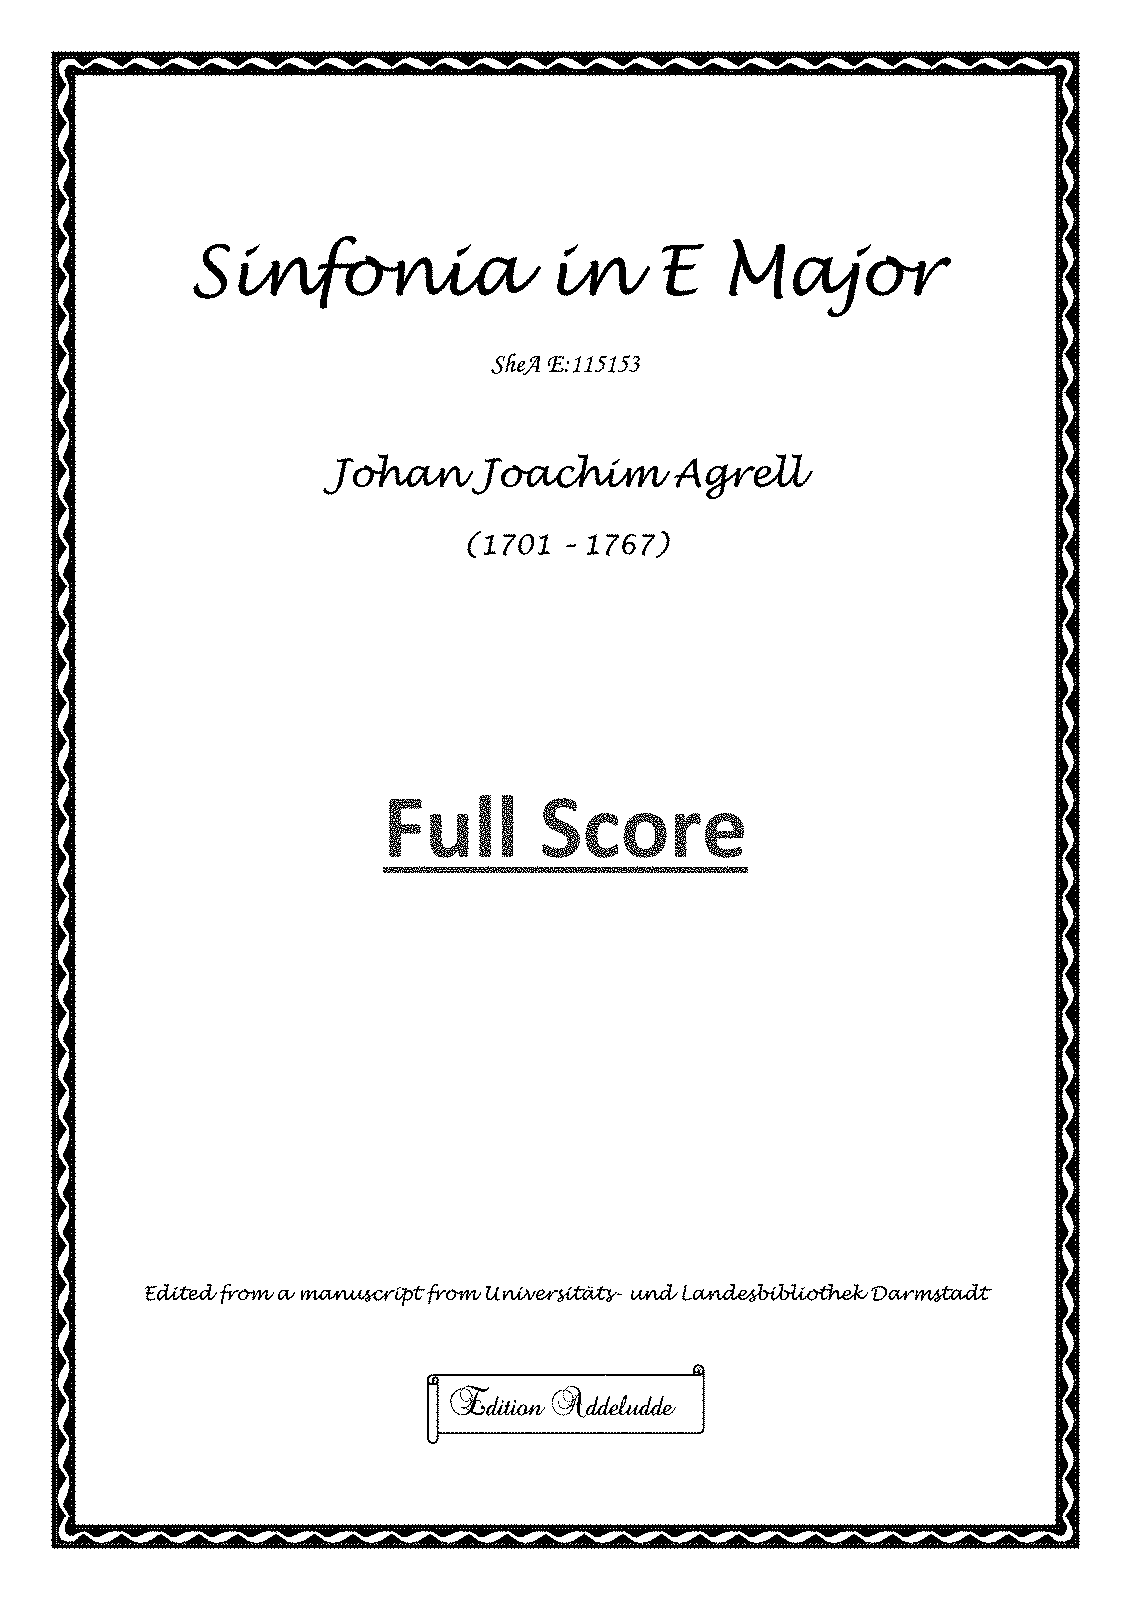 PMLP471356-Sinfonia in E Major Full Score.pdf